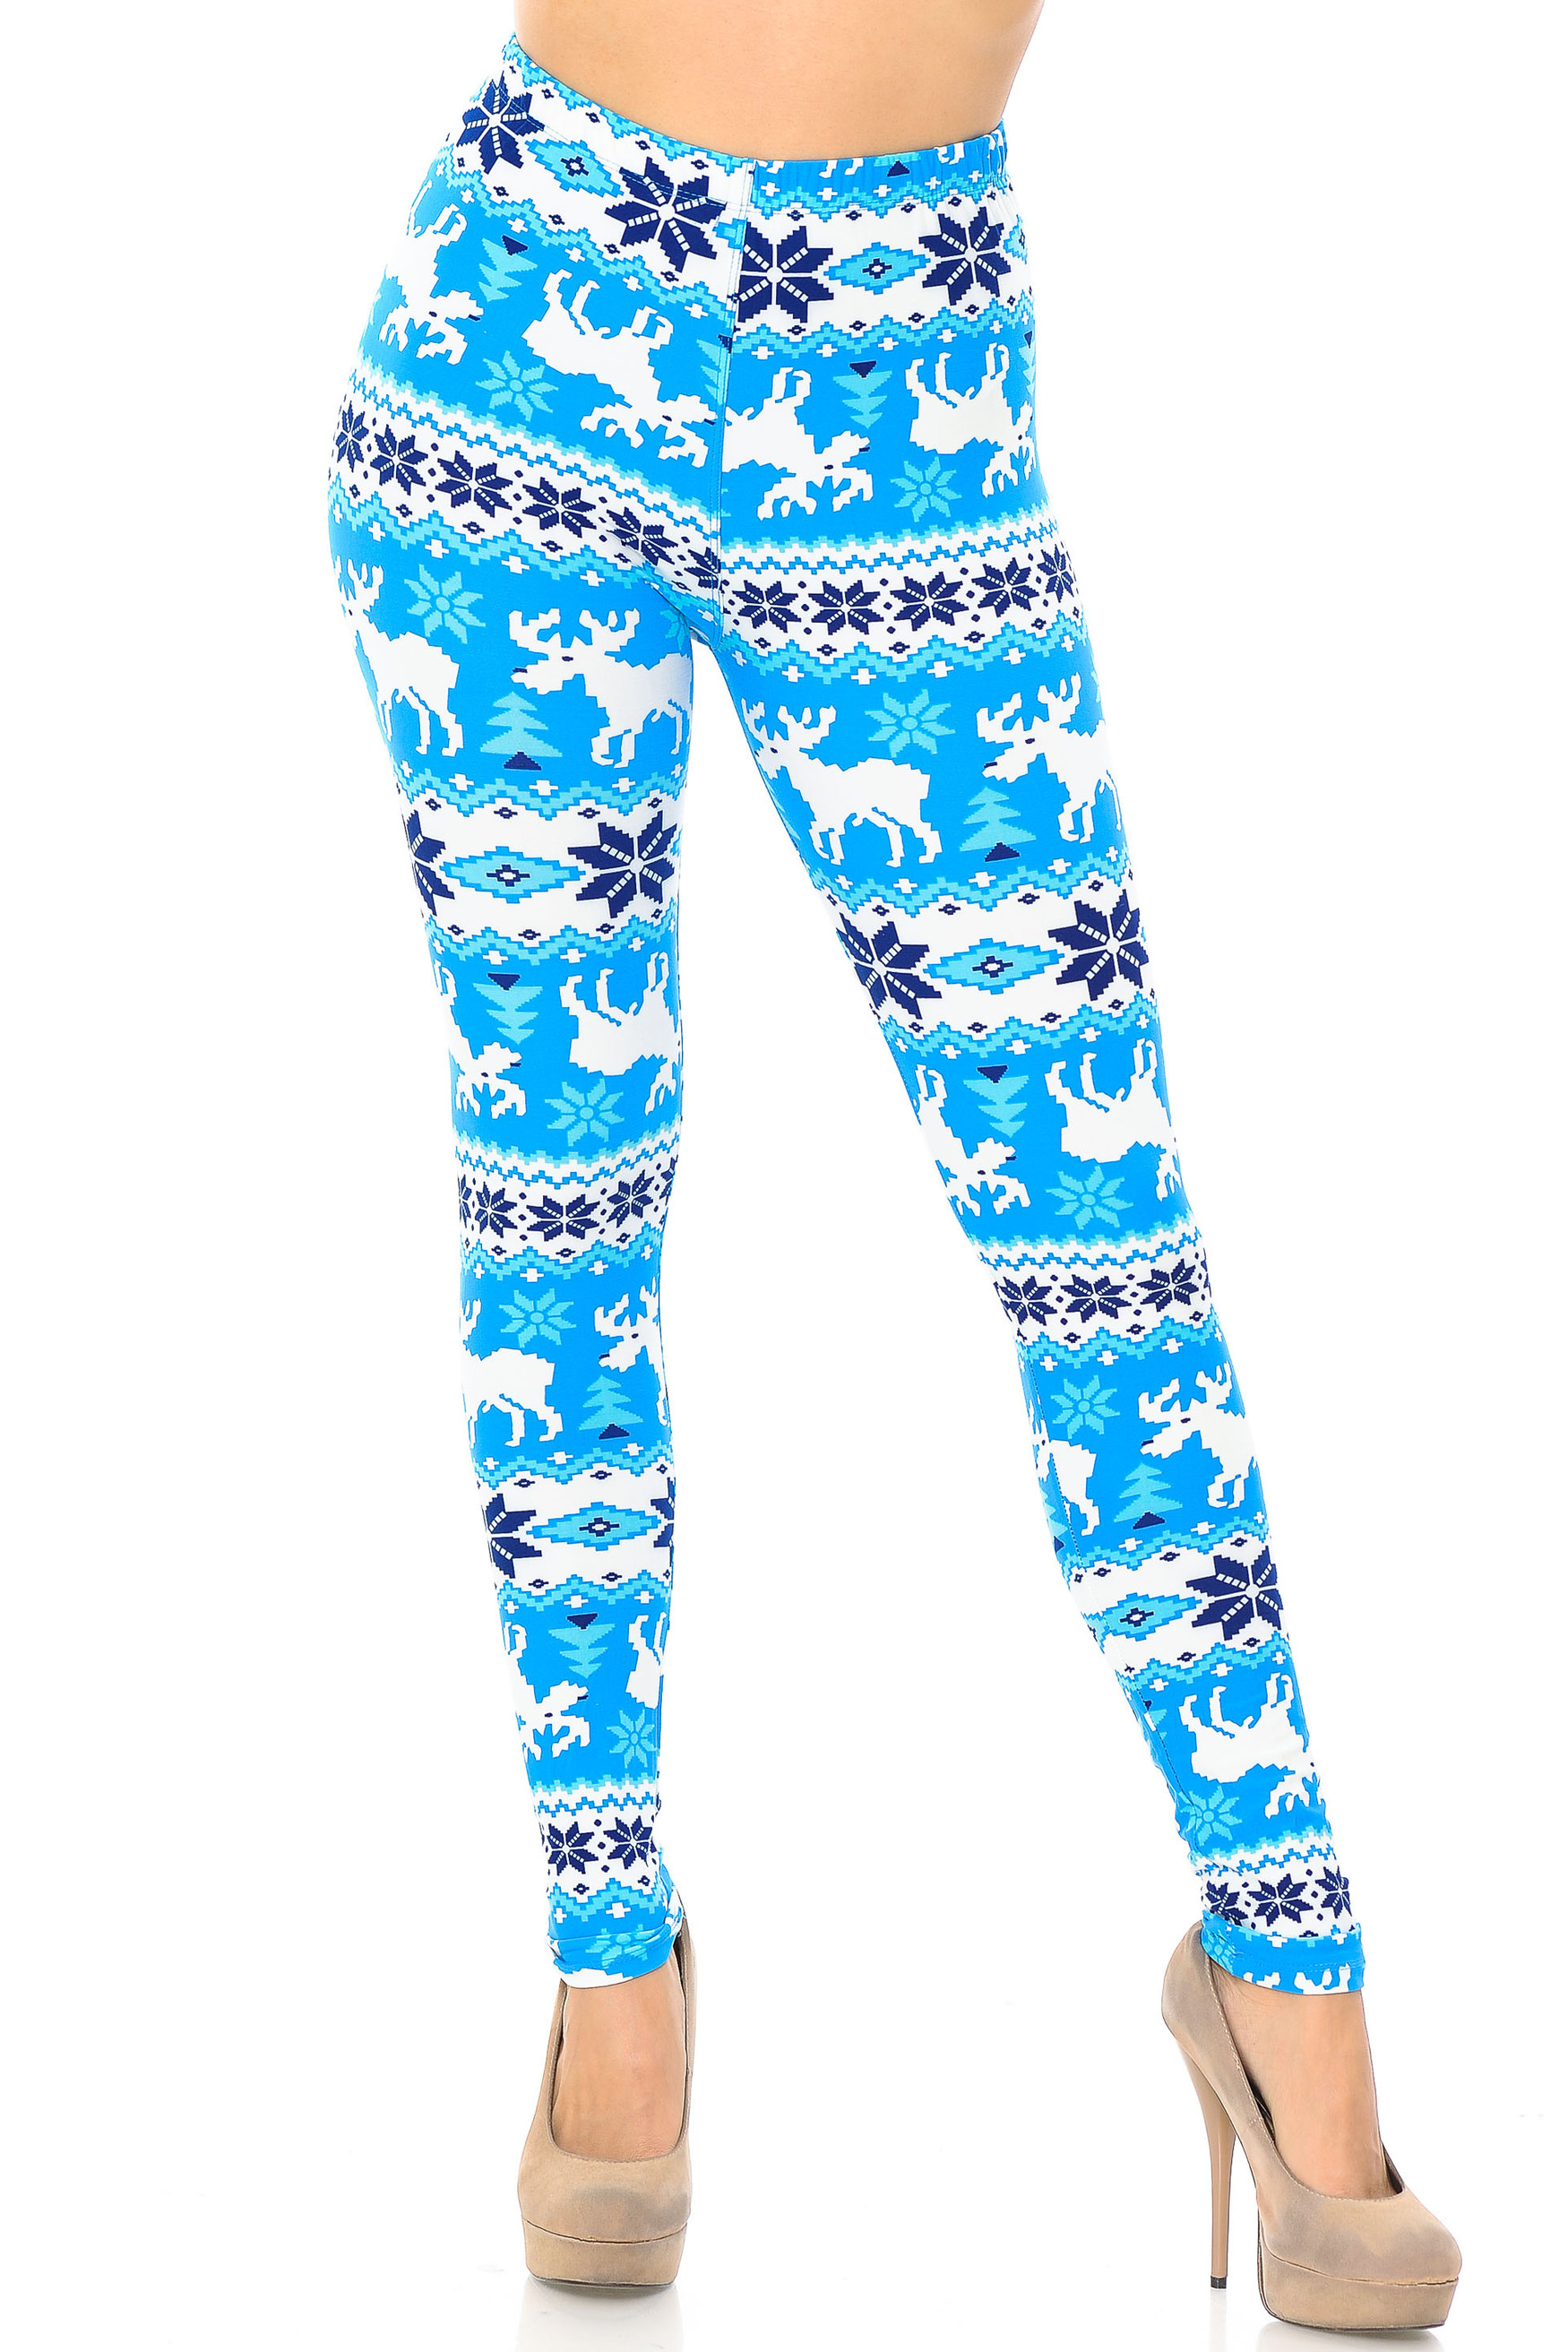 Brushed  Icy Blue Christmas Reindeer Extra Plus Size Leggings - 3X-5X